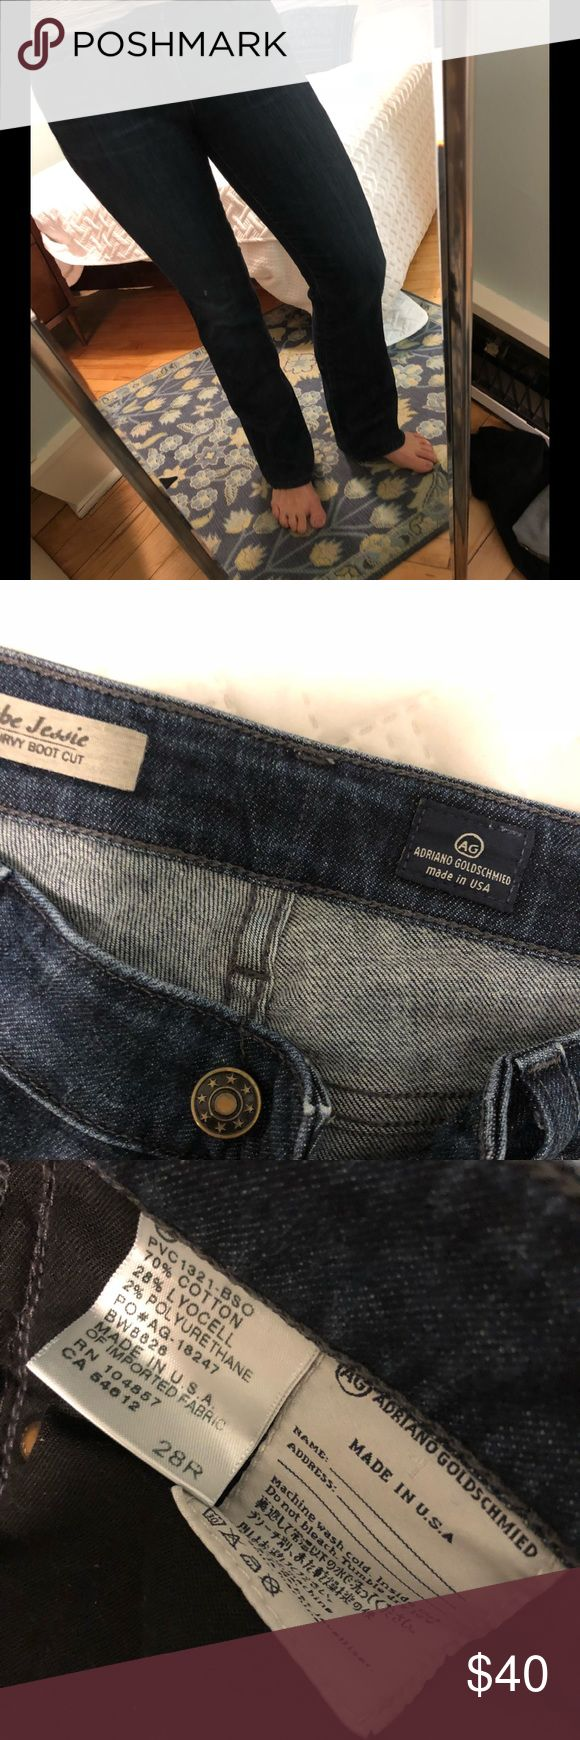 """AG Jeans, The Jessie. Curvy boot cut. 28R. AG Jeans, boot cut. Soft and comfortable! Professionally hemmed. Will add measurements later. The Jessie Curvy bootcut. 32"""" inseam. Ag Adriano Goldschmied Jeans Boot Cut"""